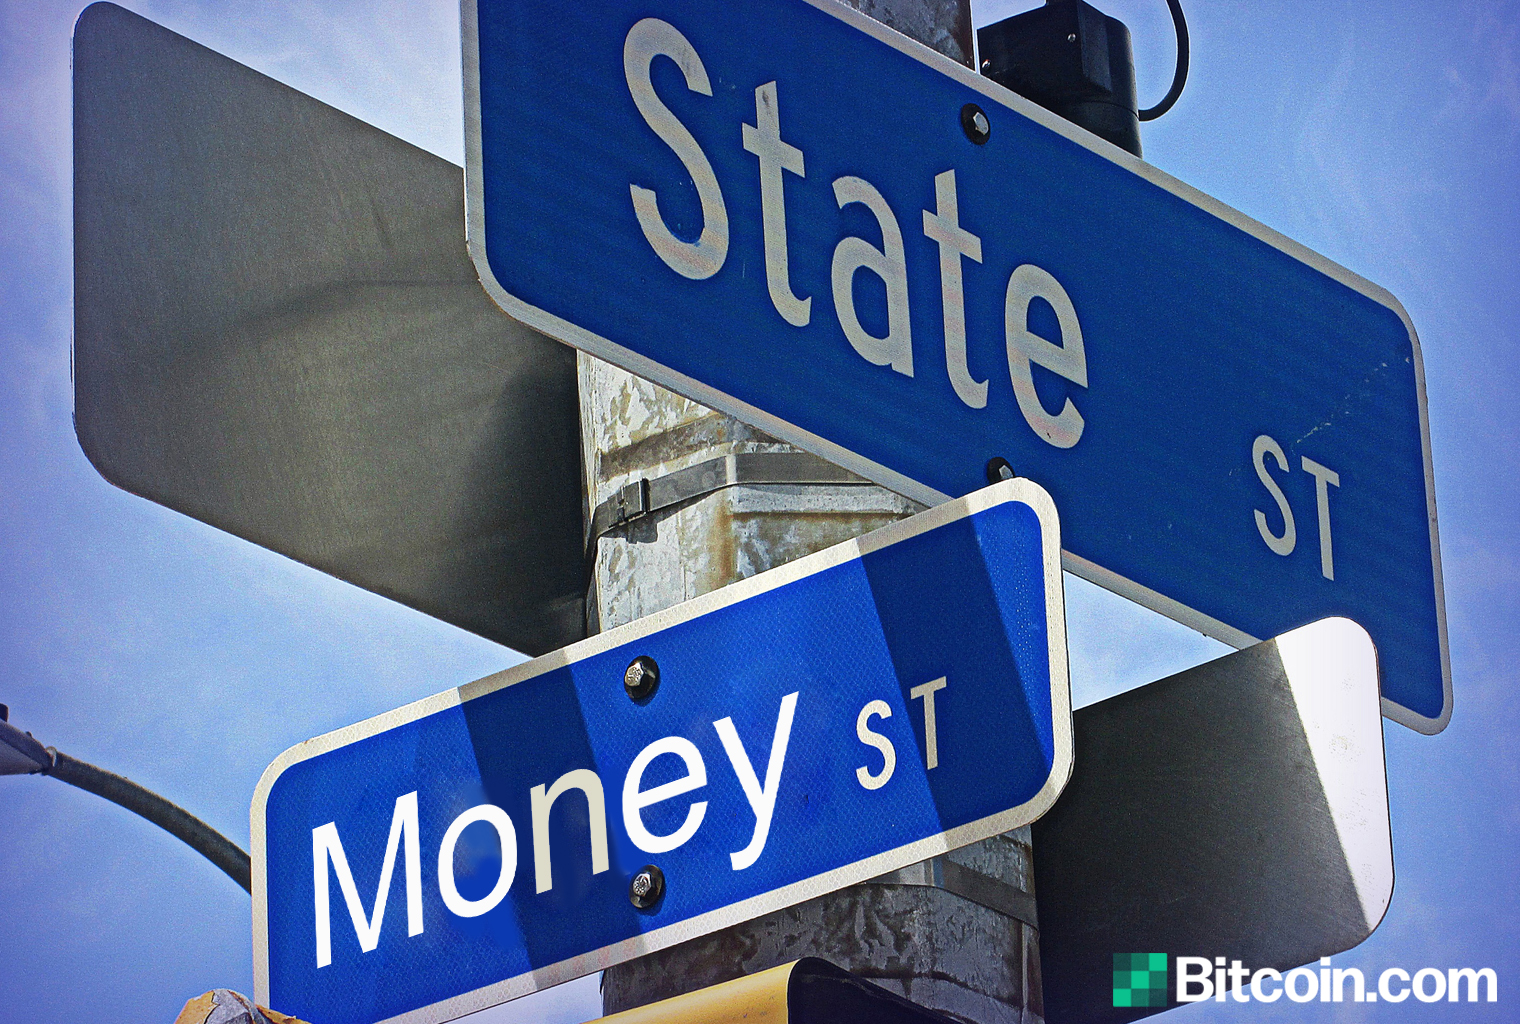 The Most Important Aspect of Bitcoin Is the Separation of Money and State - Bitcoin News